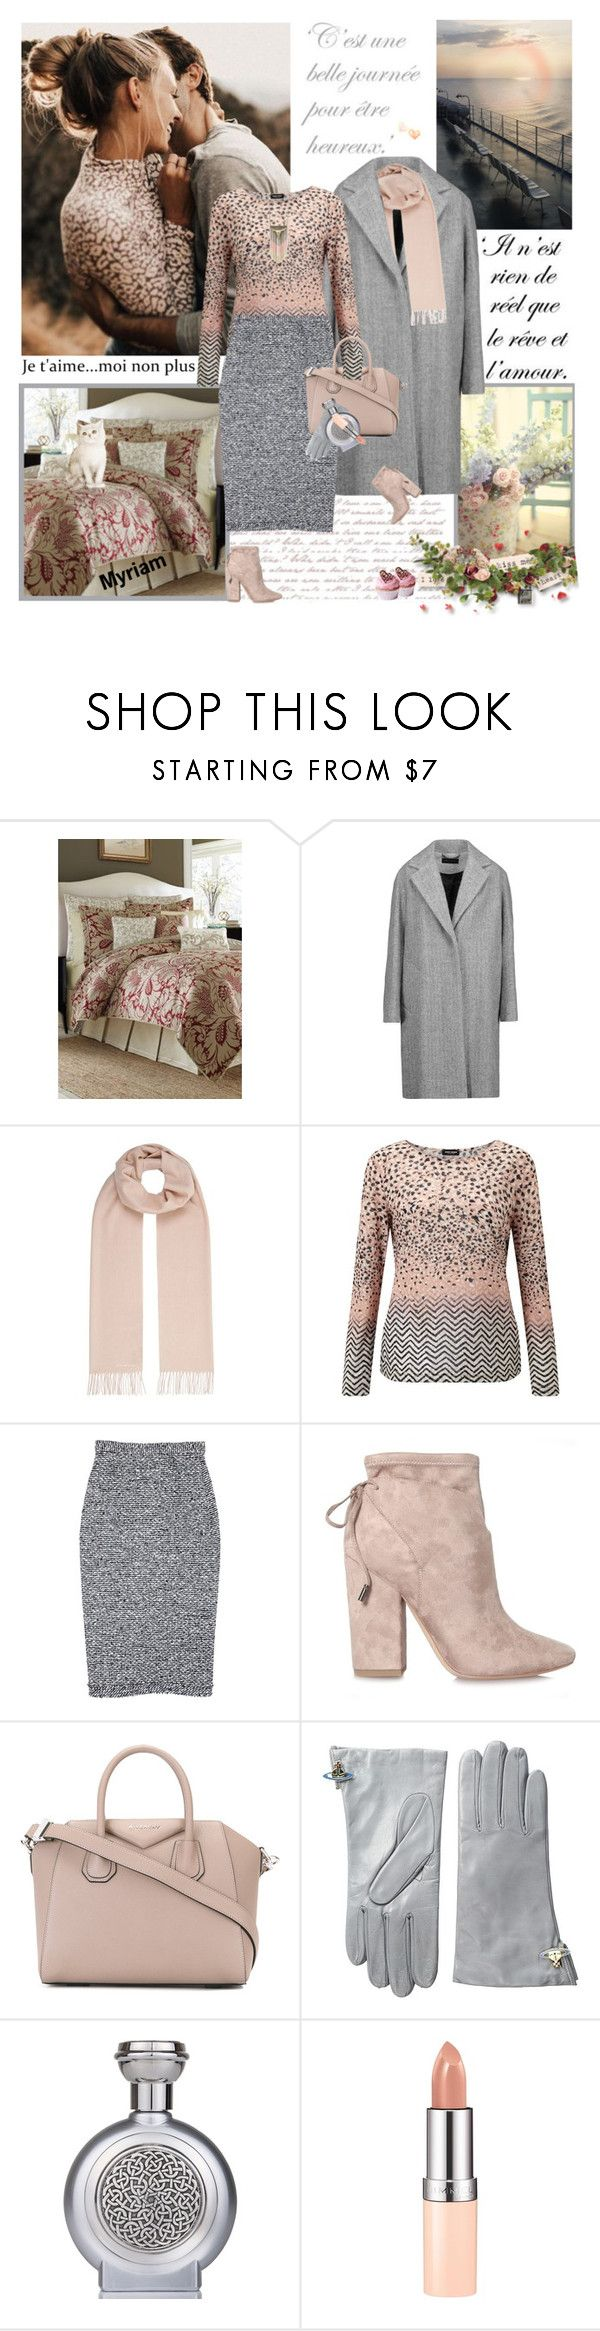 """""""JE T'AIME MOI NON PLUS"""" by lovemeforthelife-myriam ❤ liked on Polyvore featuring Croscill, Aime, rag & bone, Weekend Max Mara, Gerry Weber, Roland Mouret, Kendall + Kylie, Givenchy, Vivienne Westwood and Boadicea the Victorious"""